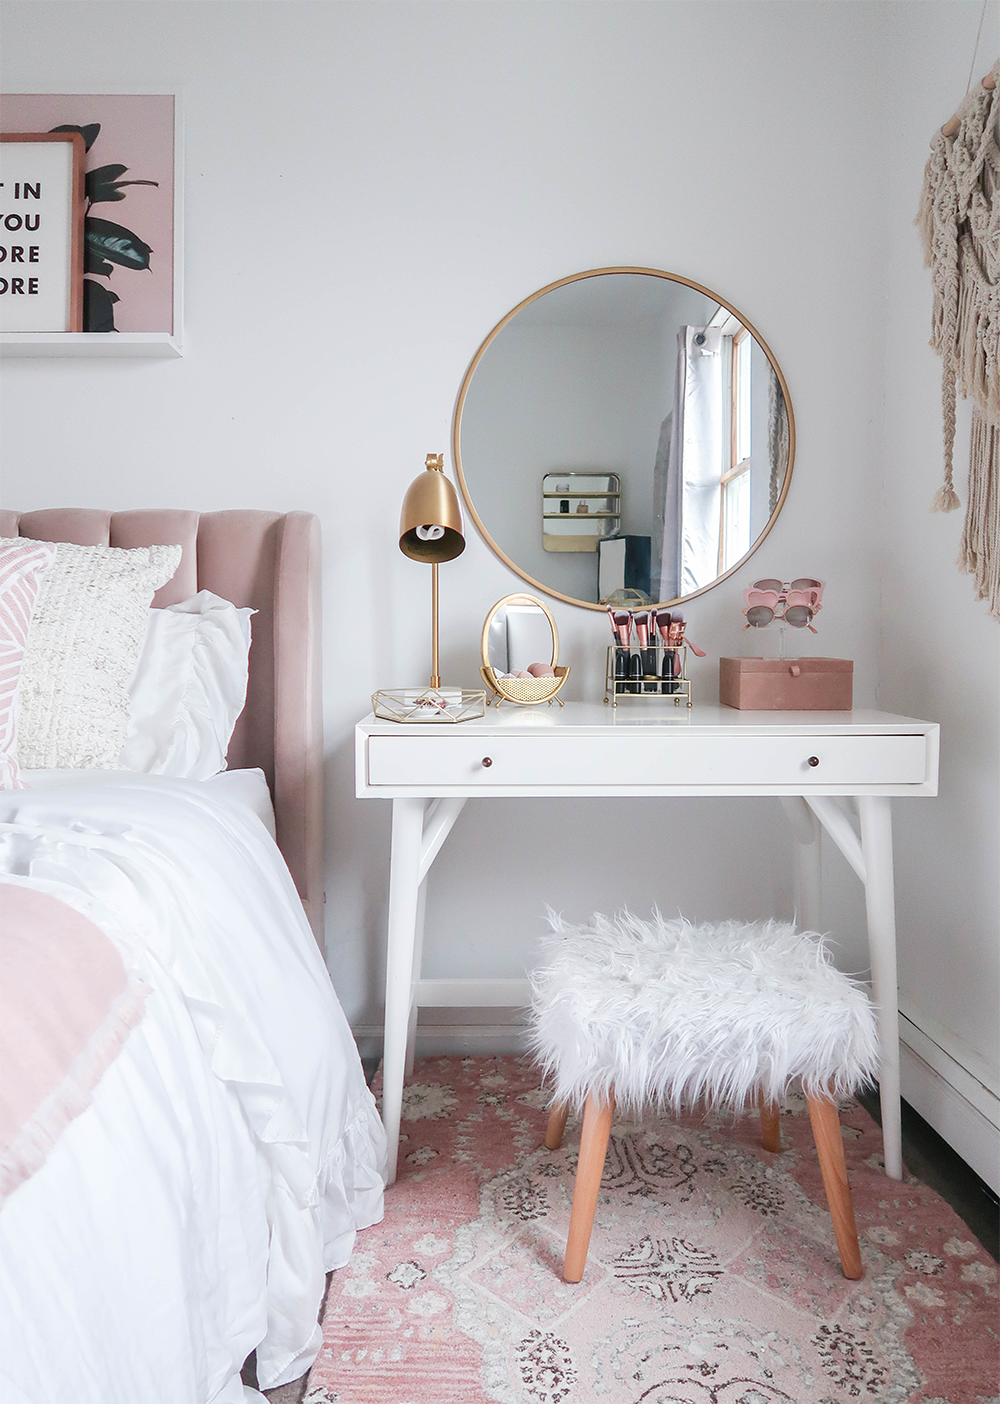 Styling A Vanity In A Small Space Small Bedroom Vanity Room